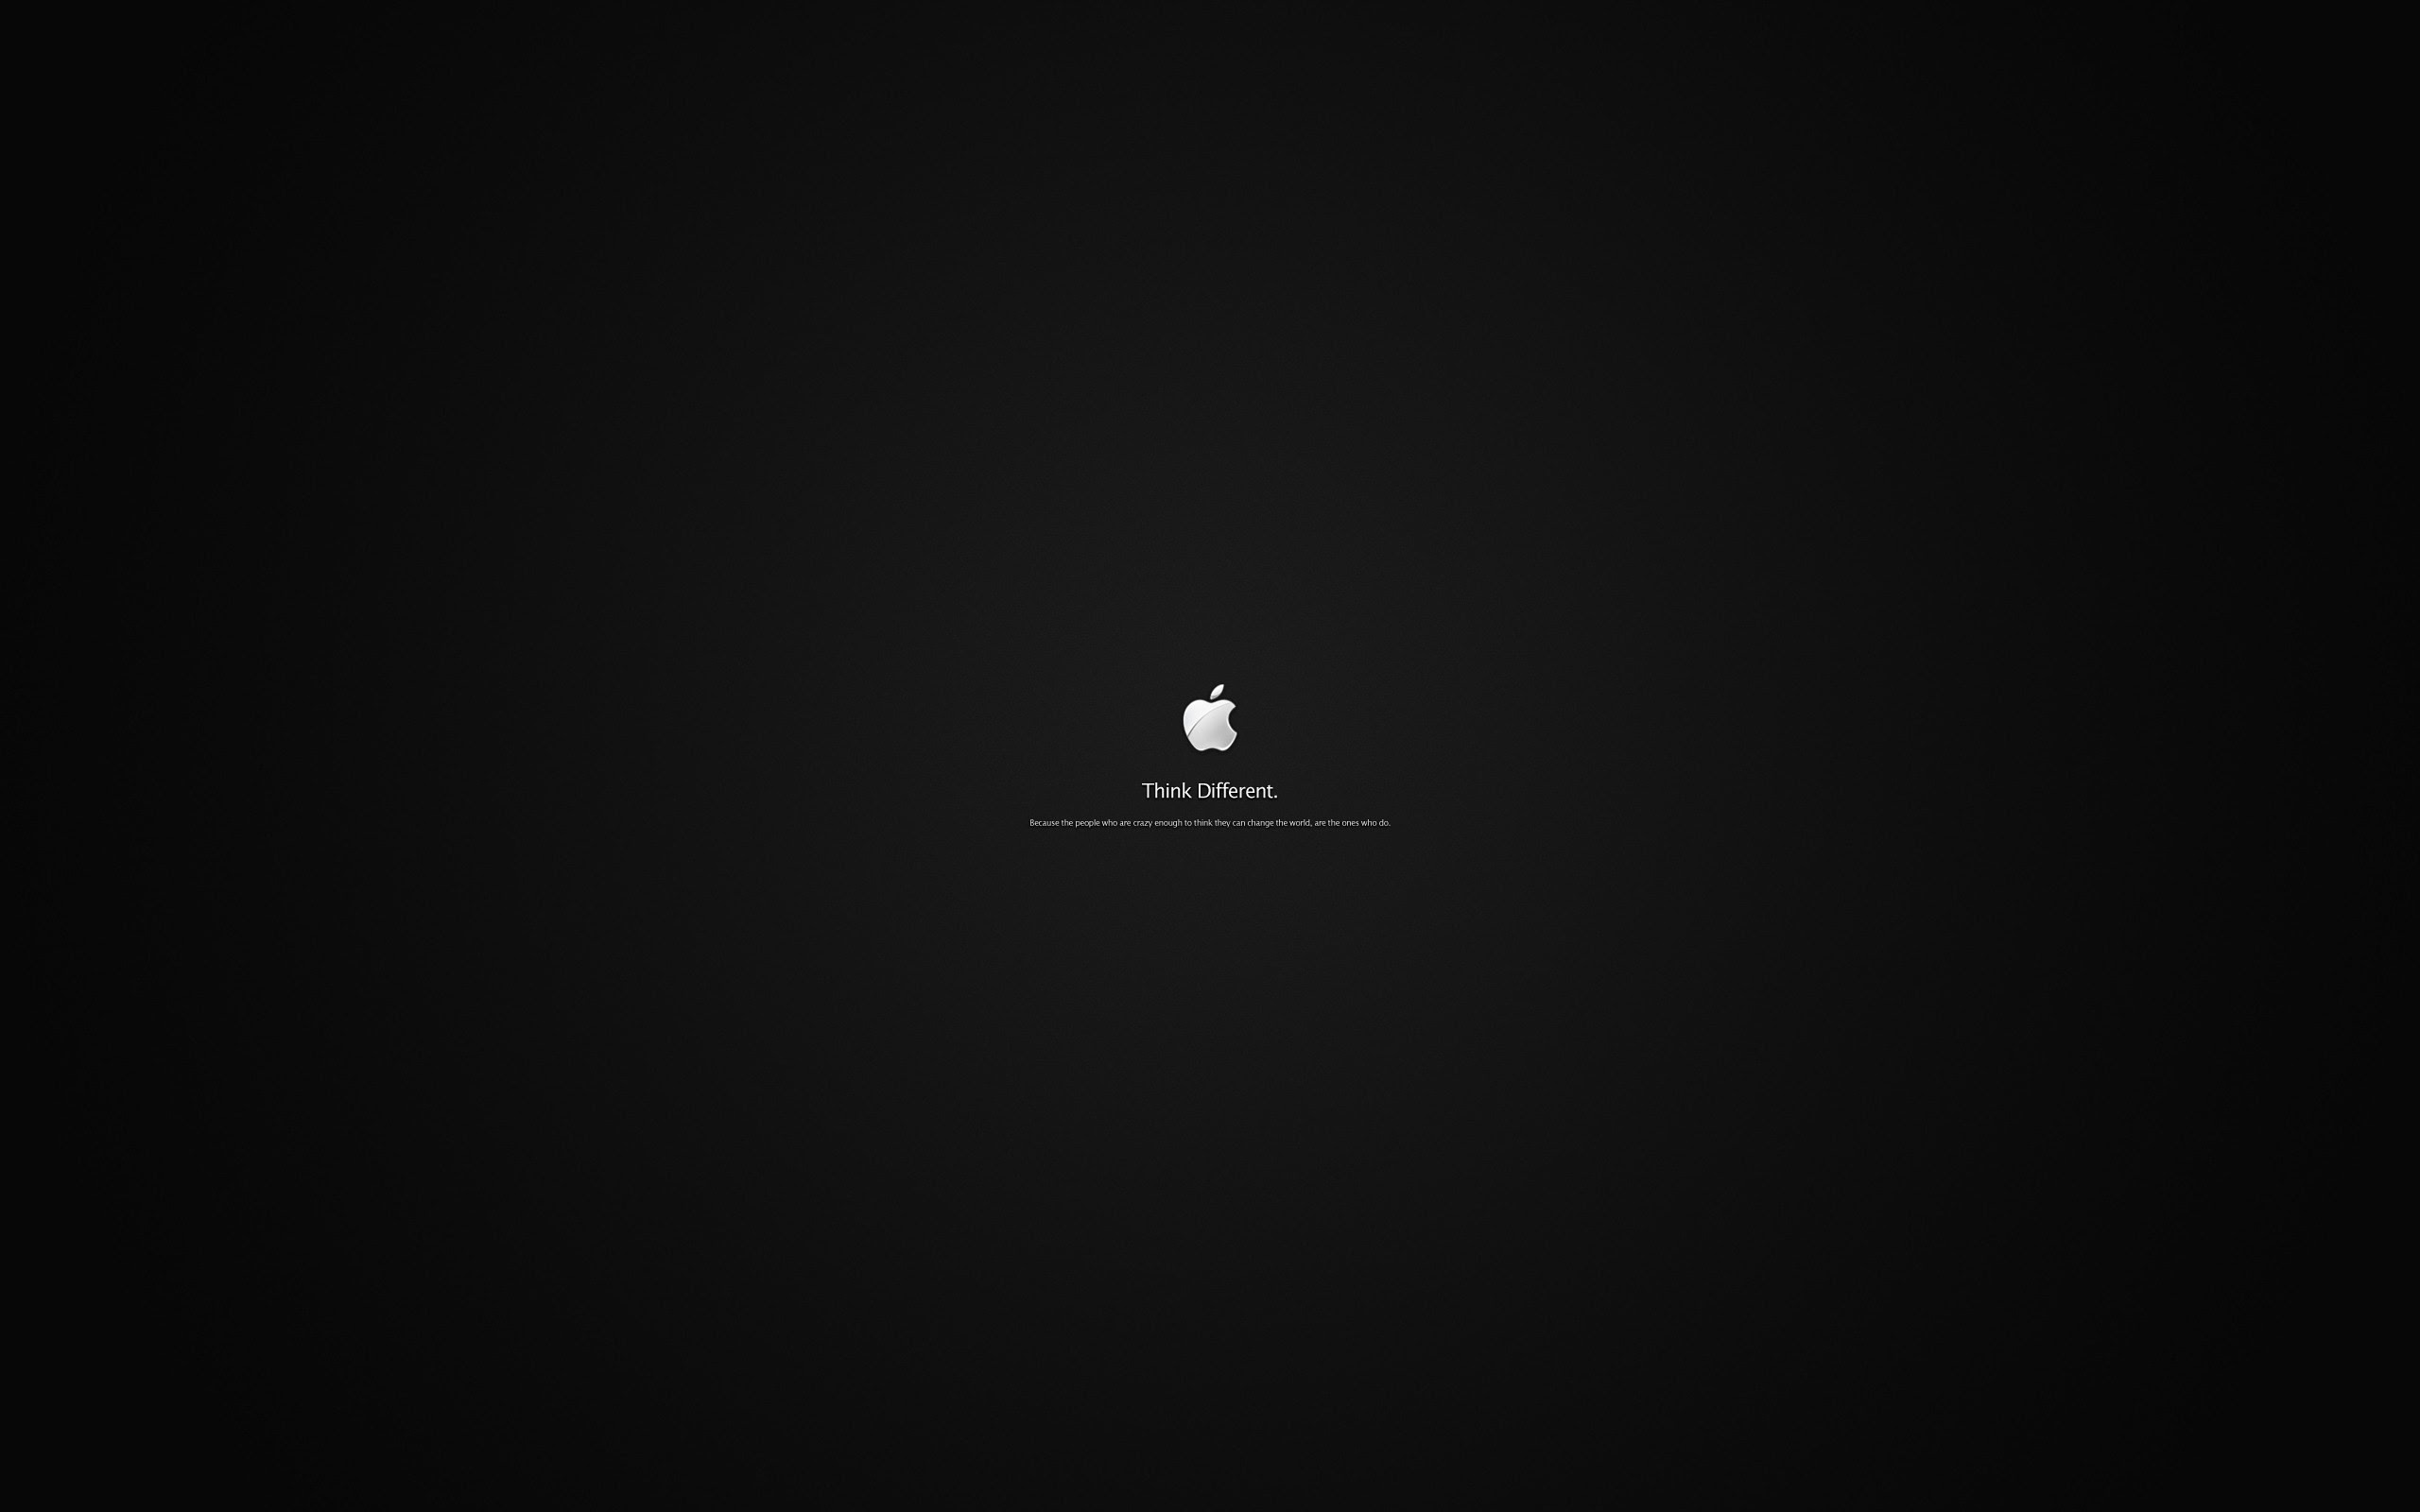 Unduh 1000+ Wallpaper Apple Think Different HD Paling Baru